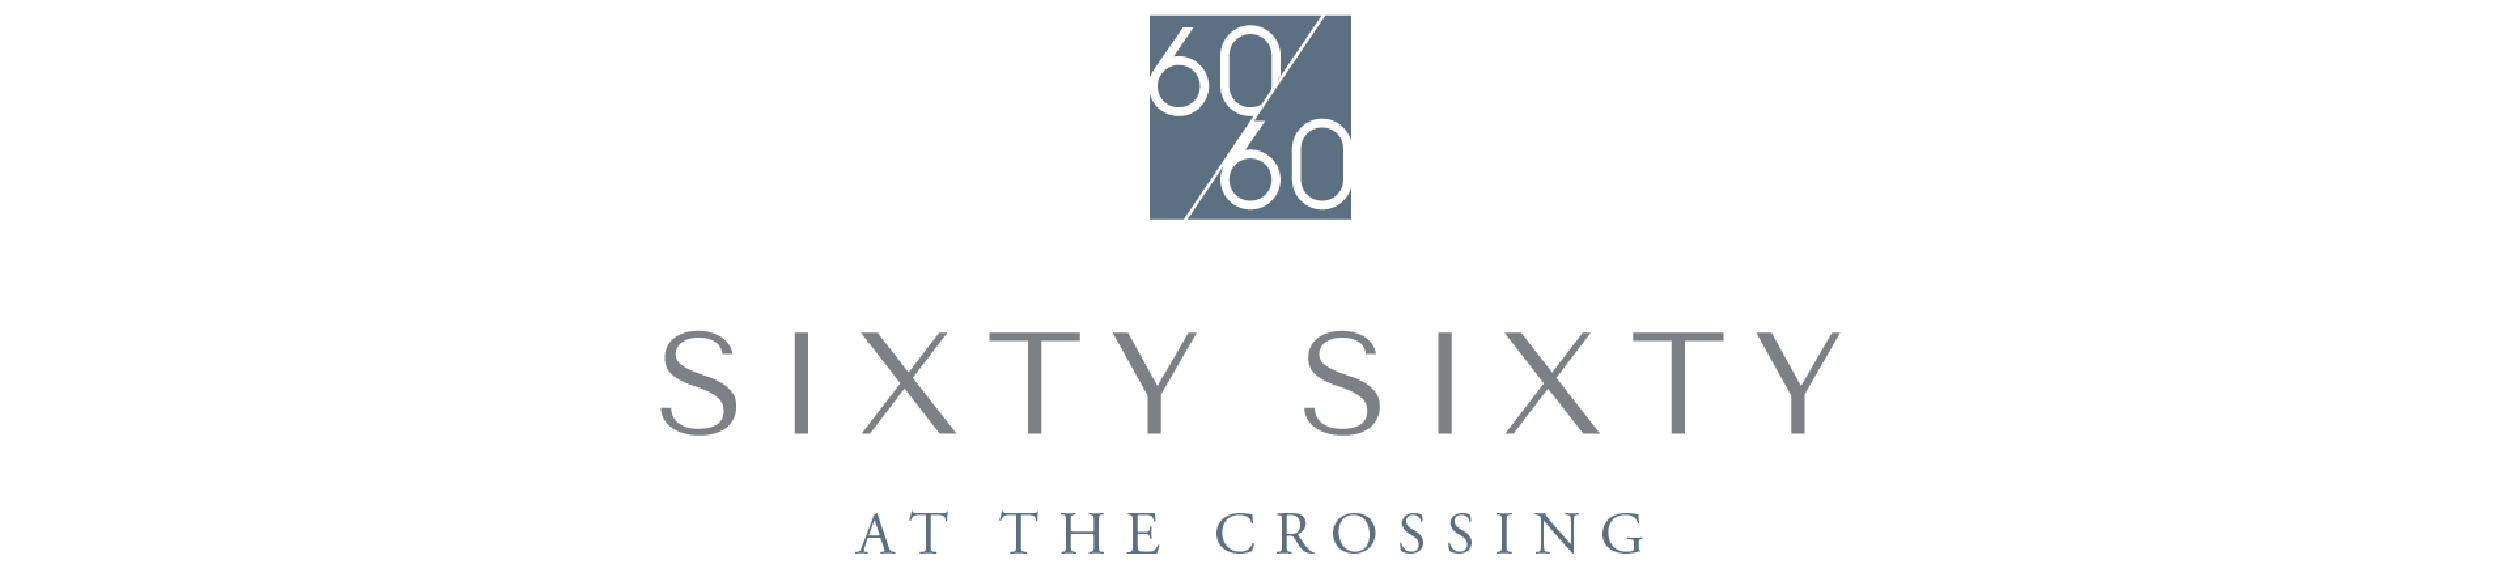 Sixty Sixty at The Crossing